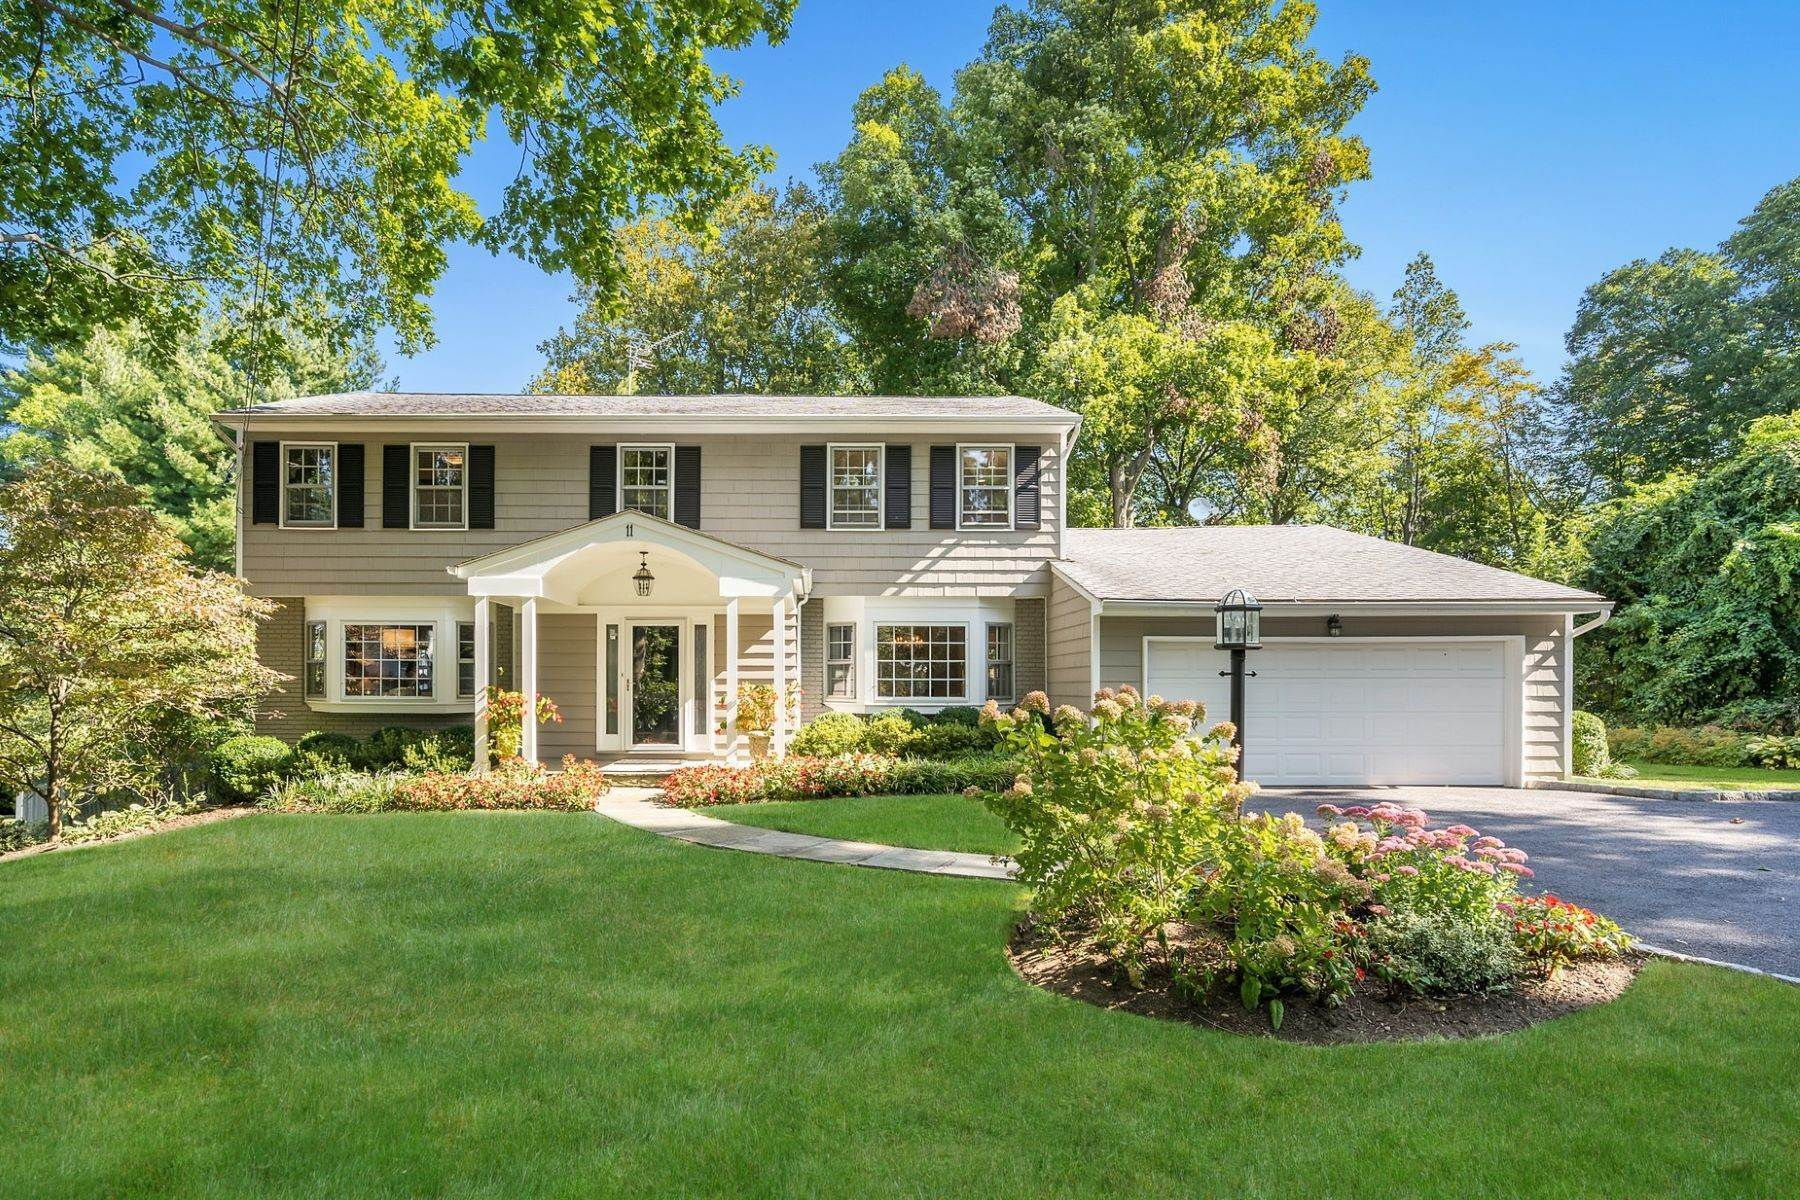 Single Family Homes for Sale at Fabulous Move-In Condition Center Hall Colonial 11 Greenville Road Scarsdale, New York 10583 United States